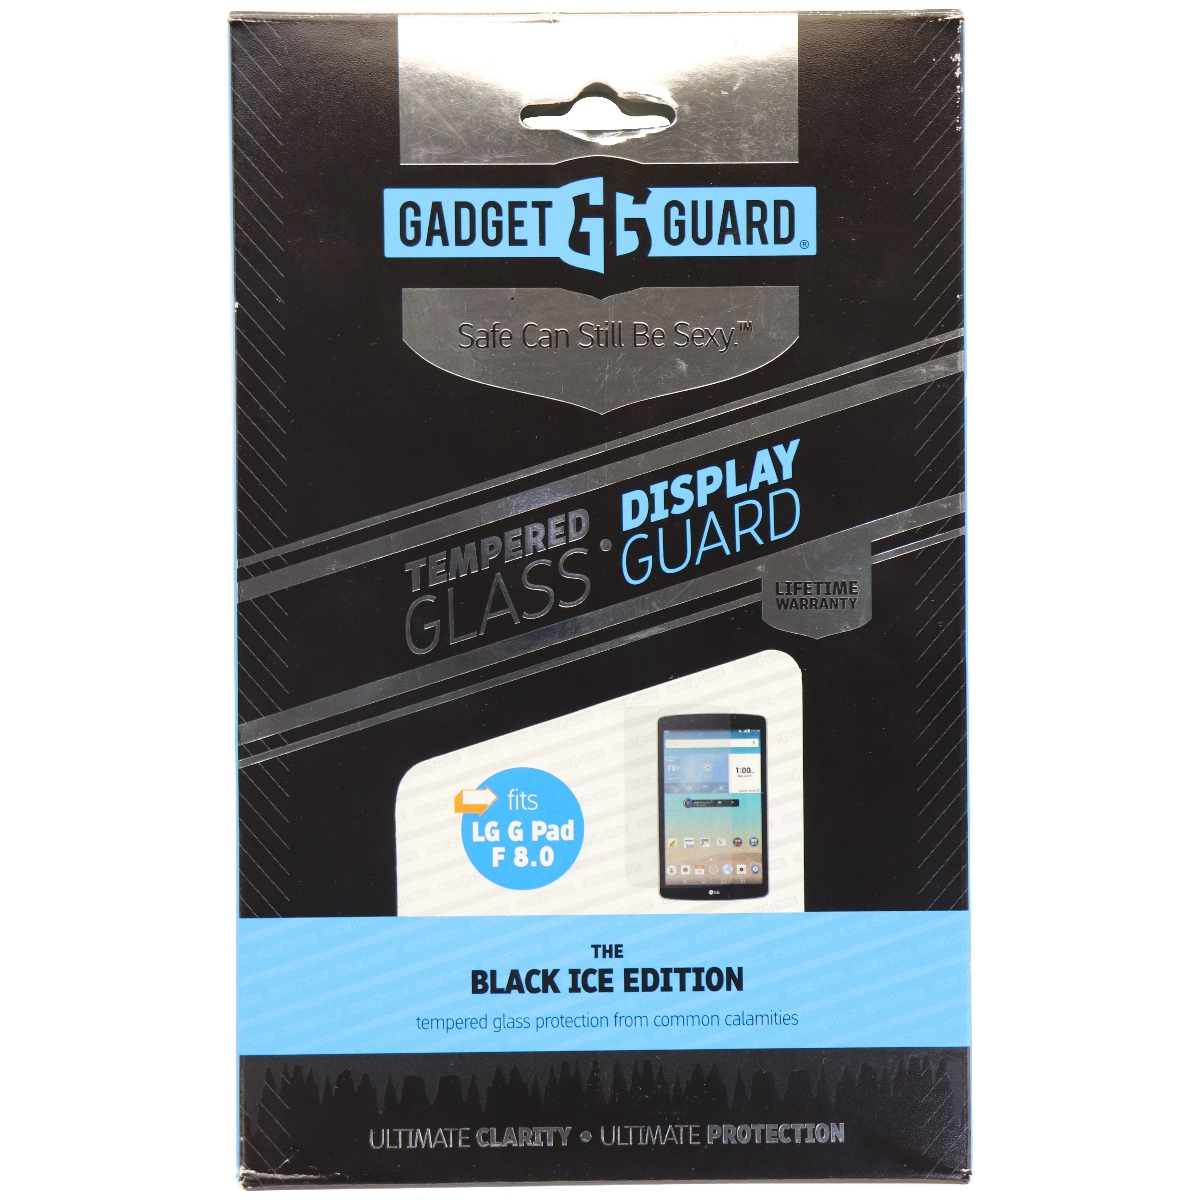 Gadget Guard Black Ice Tempered Glass Screen Protector for LG G Pad 8.0 - Clear